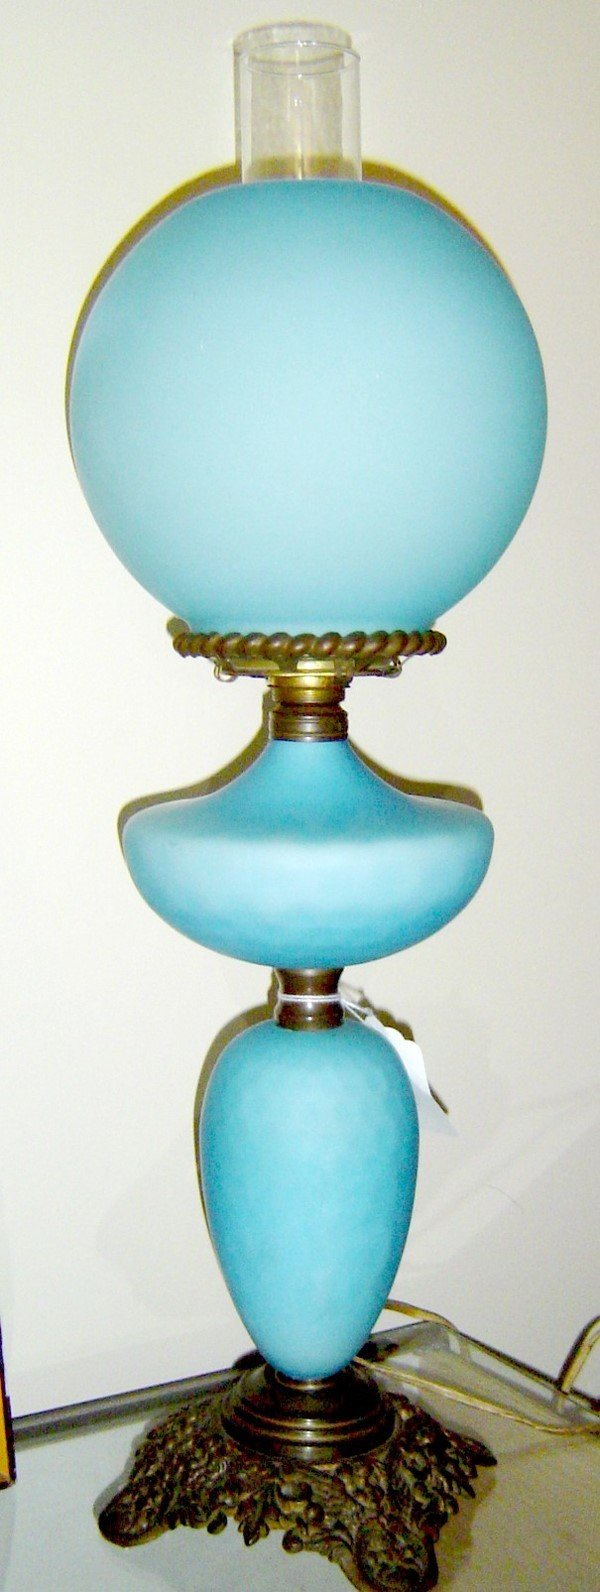 223: BLUE QUILTED SATIN GLASS BANQUET LAMP CONVERTED FR